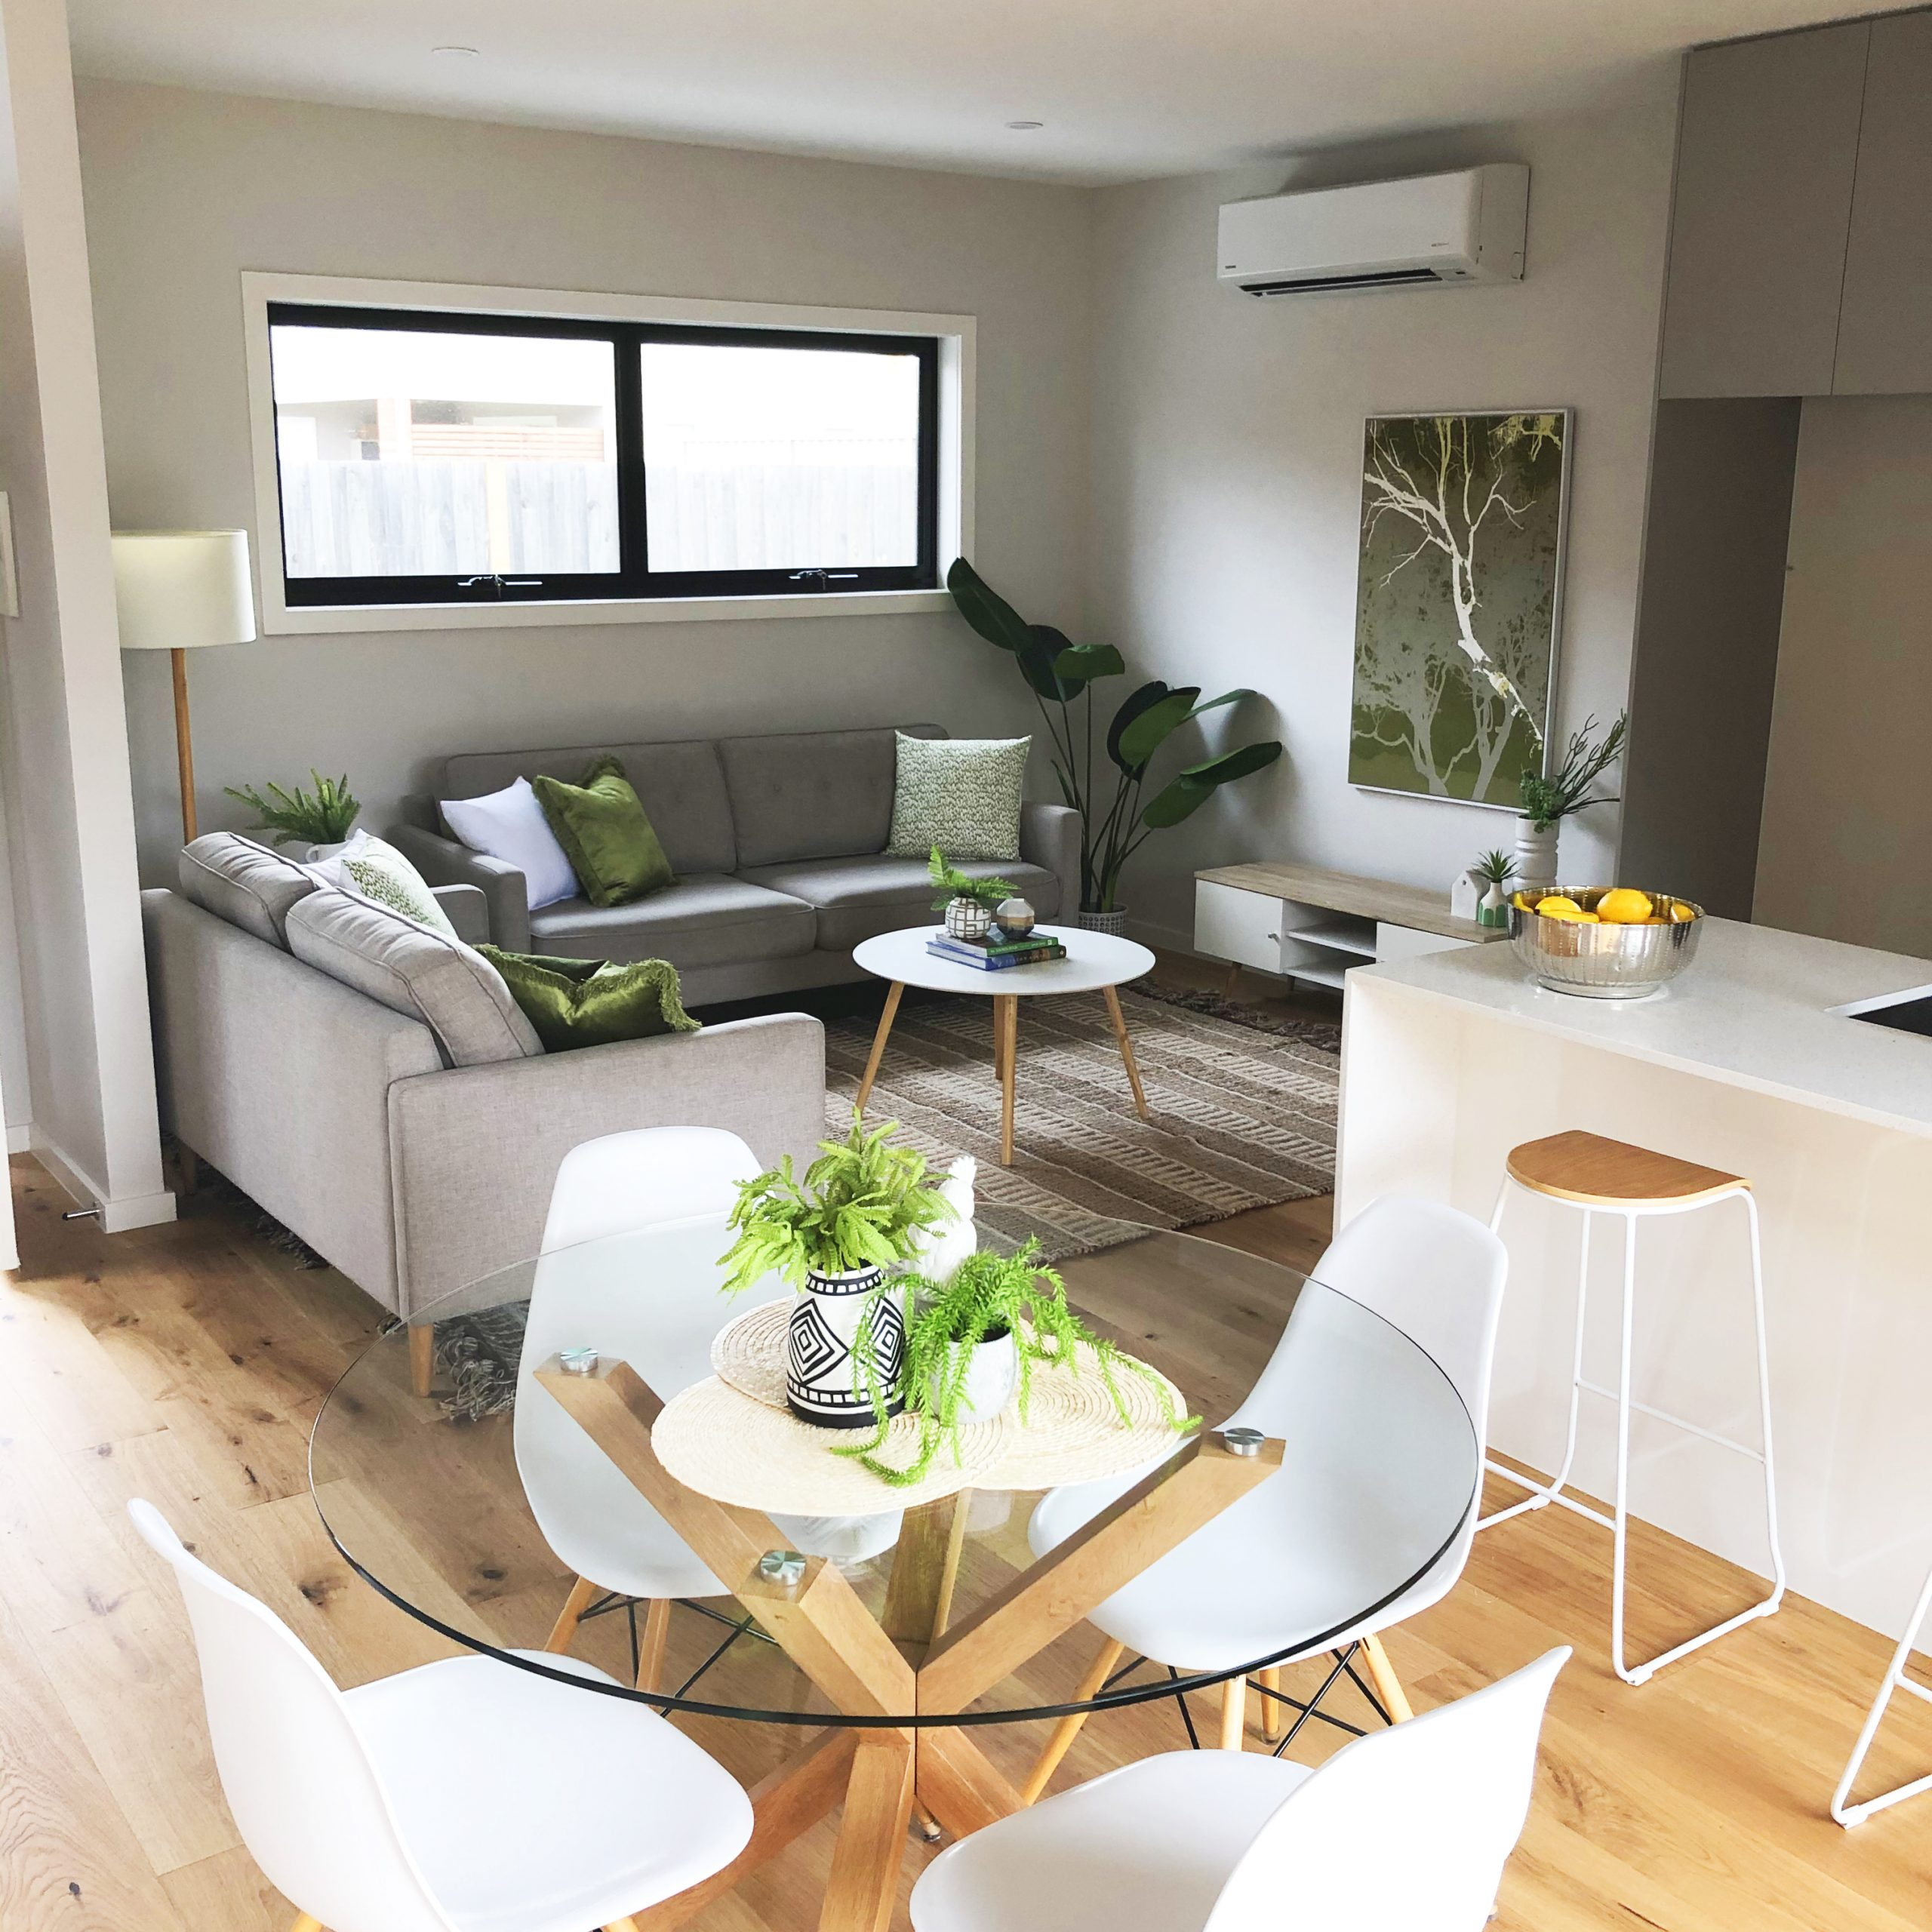 Open plan living room with meals area